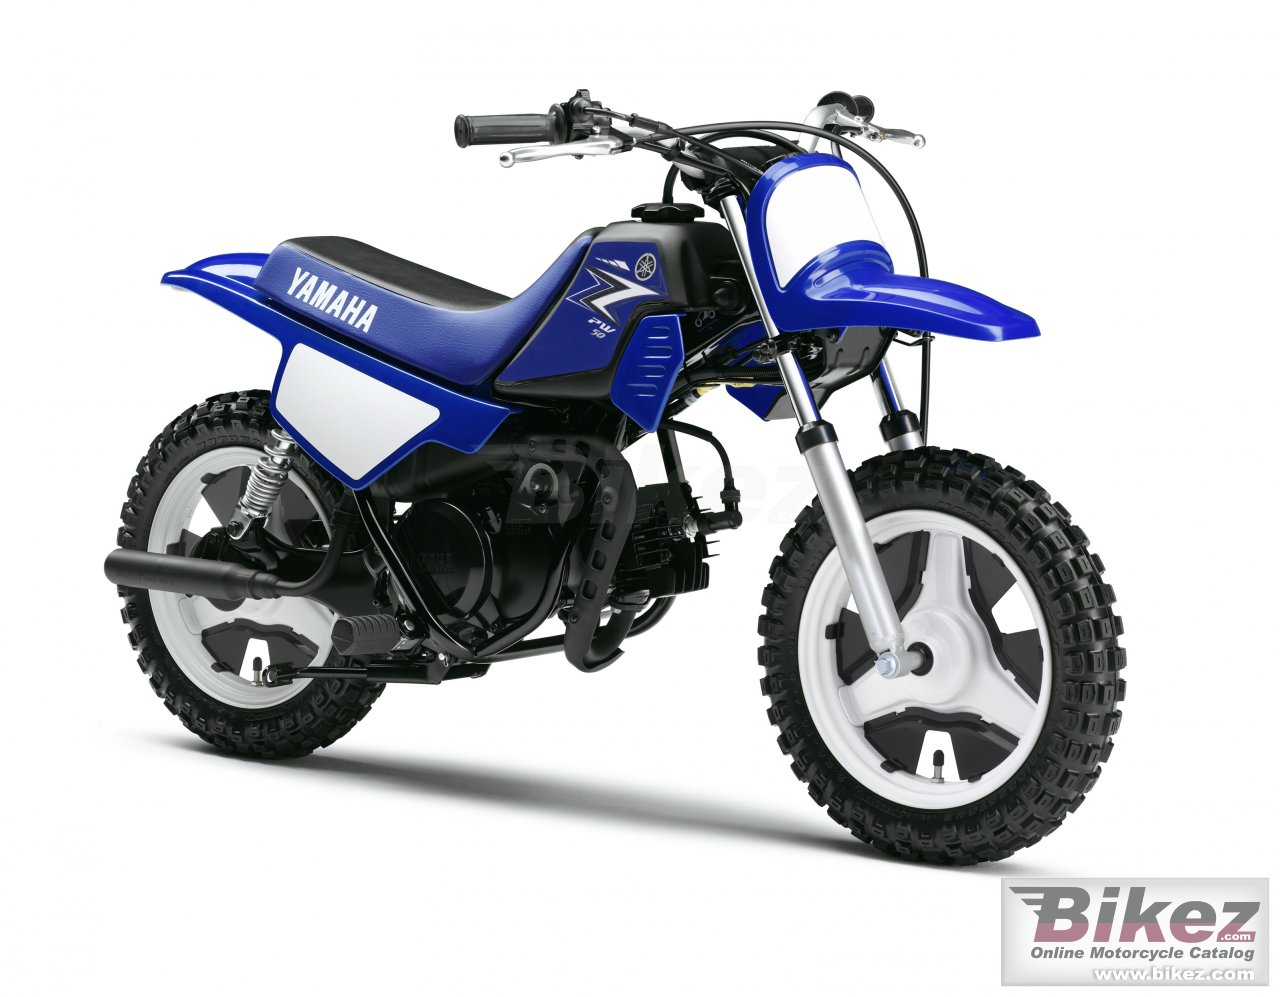 Big Yamaha pw50 picture and wallpaper from Bikez.com